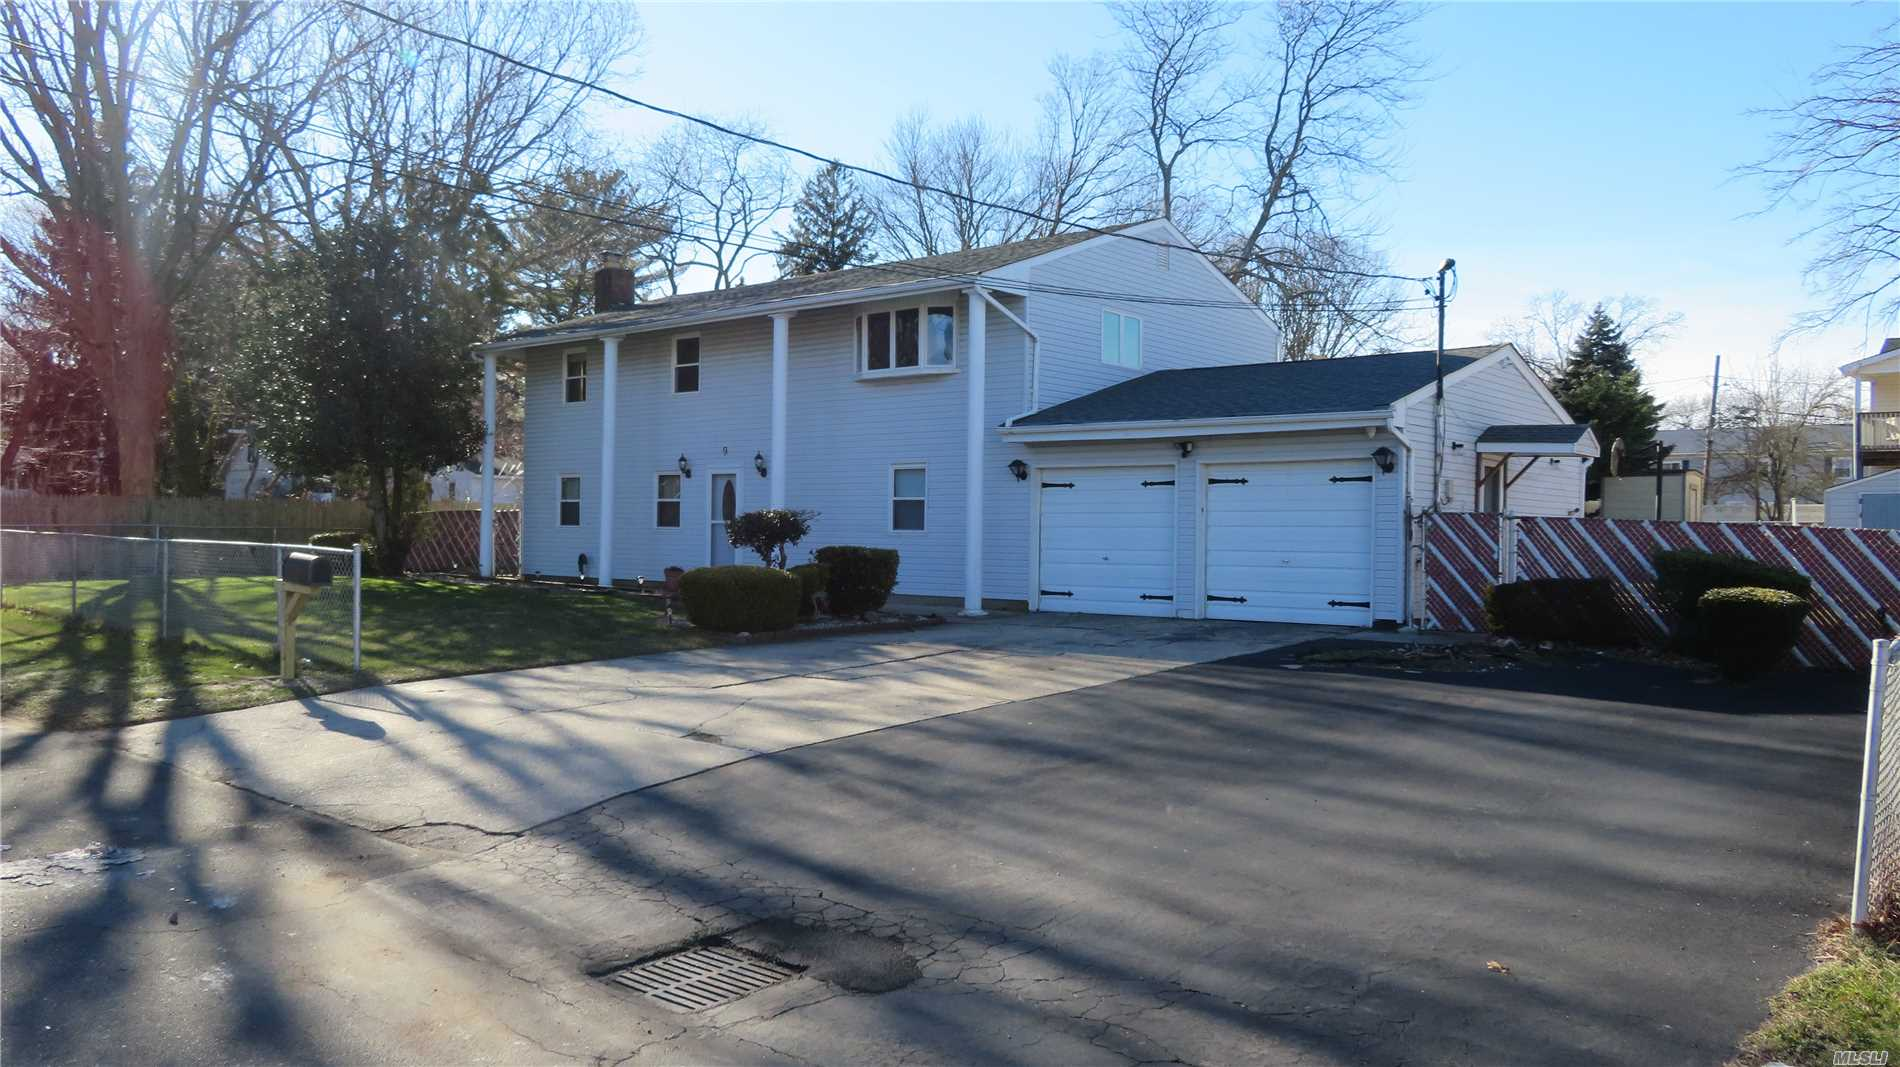 Split Level, With Private Entrance. In The West Babylon S.D. On End Of Quiet Dead End Street, Rental Is Upstairs 3 Bdrms, 1.5 Newly Remodeled Baths, Din Rm, New Carpet Through Out Sliders To Large Deck And Fenced Yard. Tenant Pays 2/3 Oil And Their Own Electric. (Seperate Meter) Option To Rent Whole House ( 5 Bedrooms 2 1/2 Baths) For $3200. Must Have Excellent Credit (700+), References And Proof Of Income.!